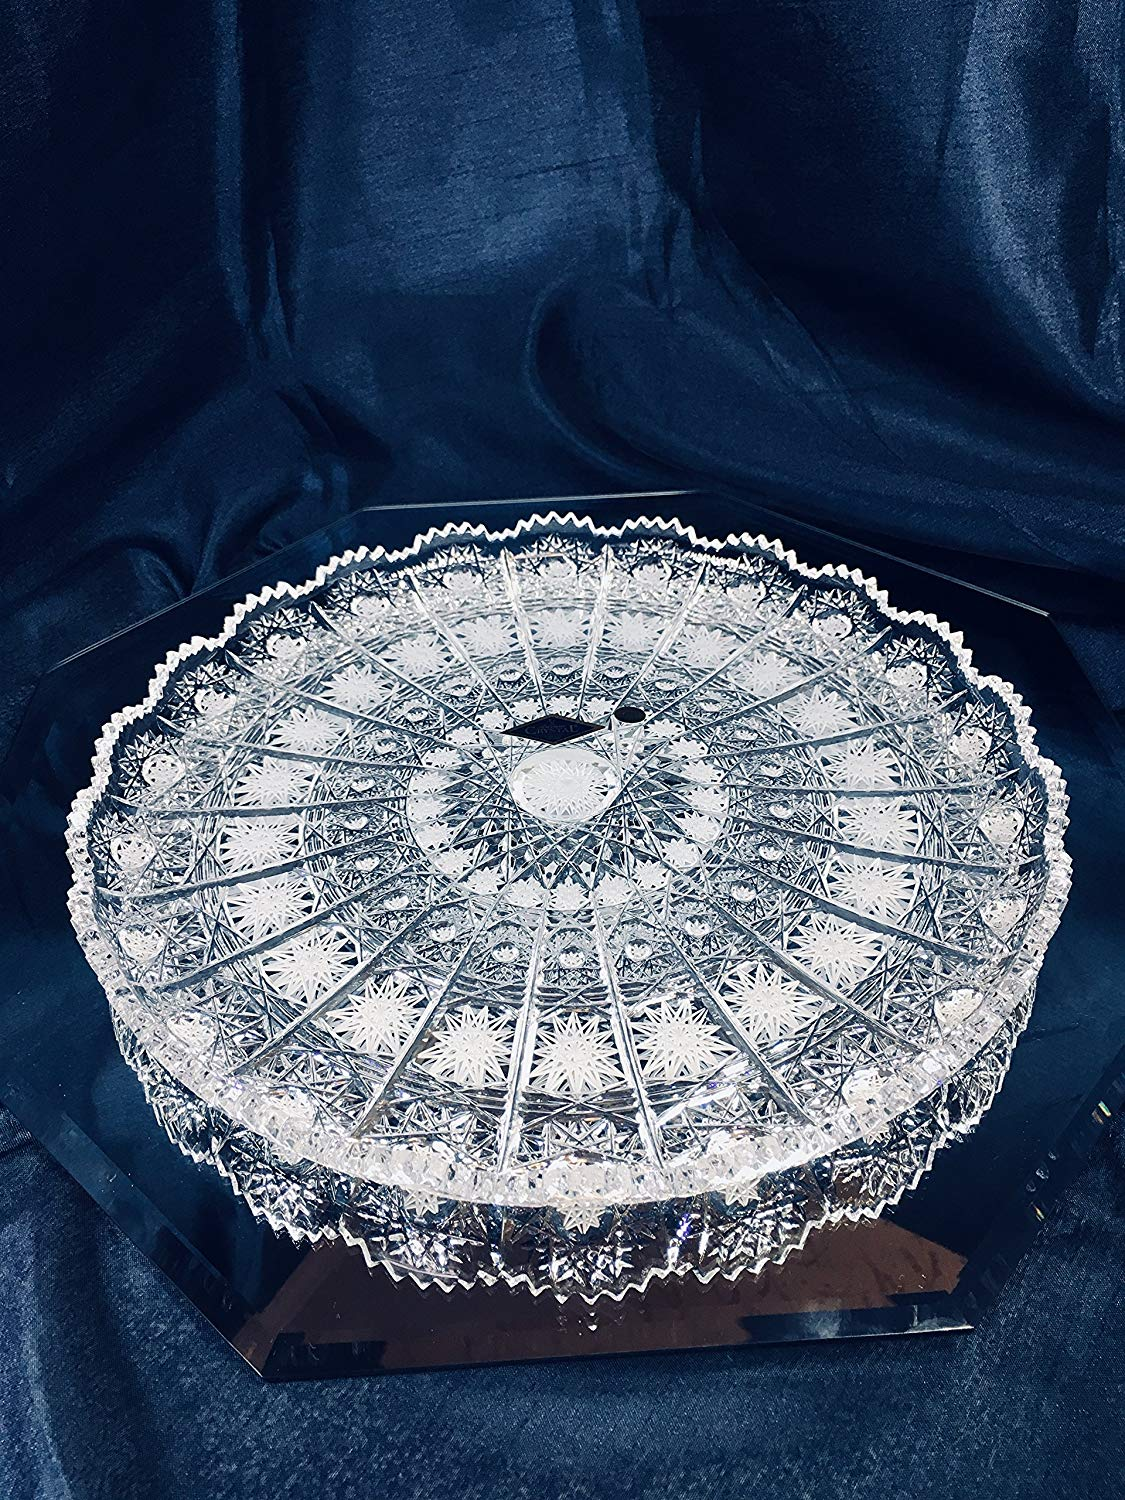 Buy Chrysanthemum Soft Glass Crystal Plate Plastic Pvc